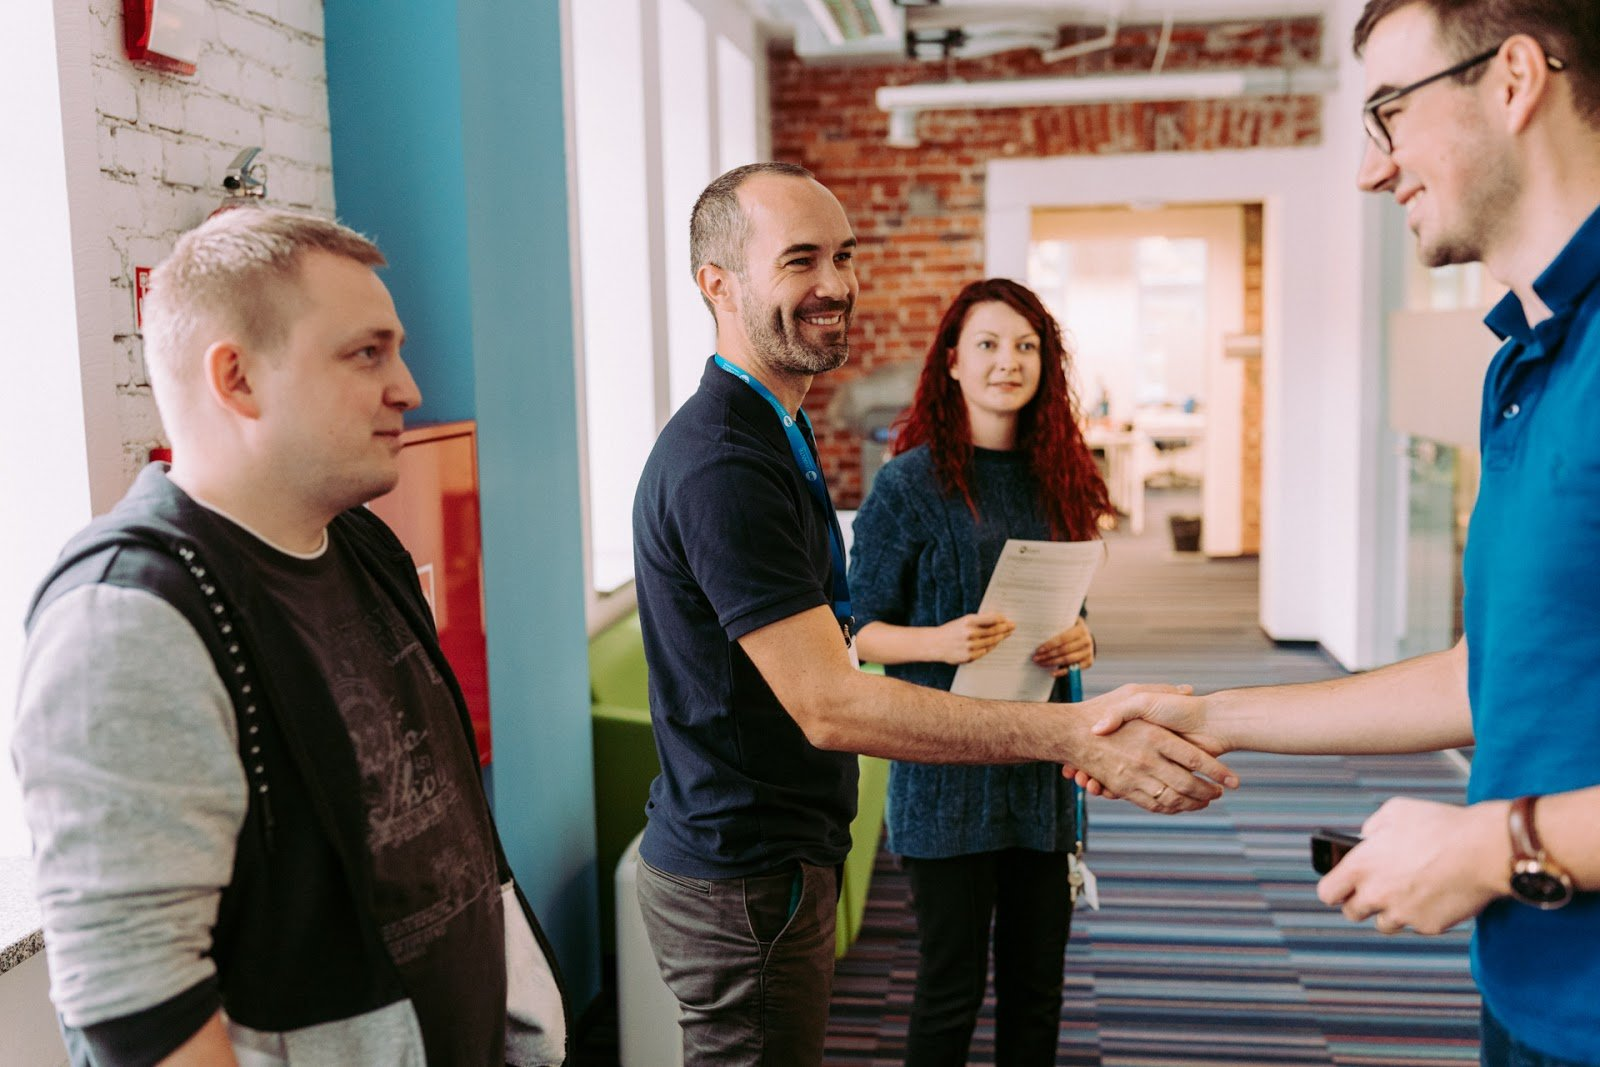 A short tour around the office is when new hires can get to know the office and meet people working there